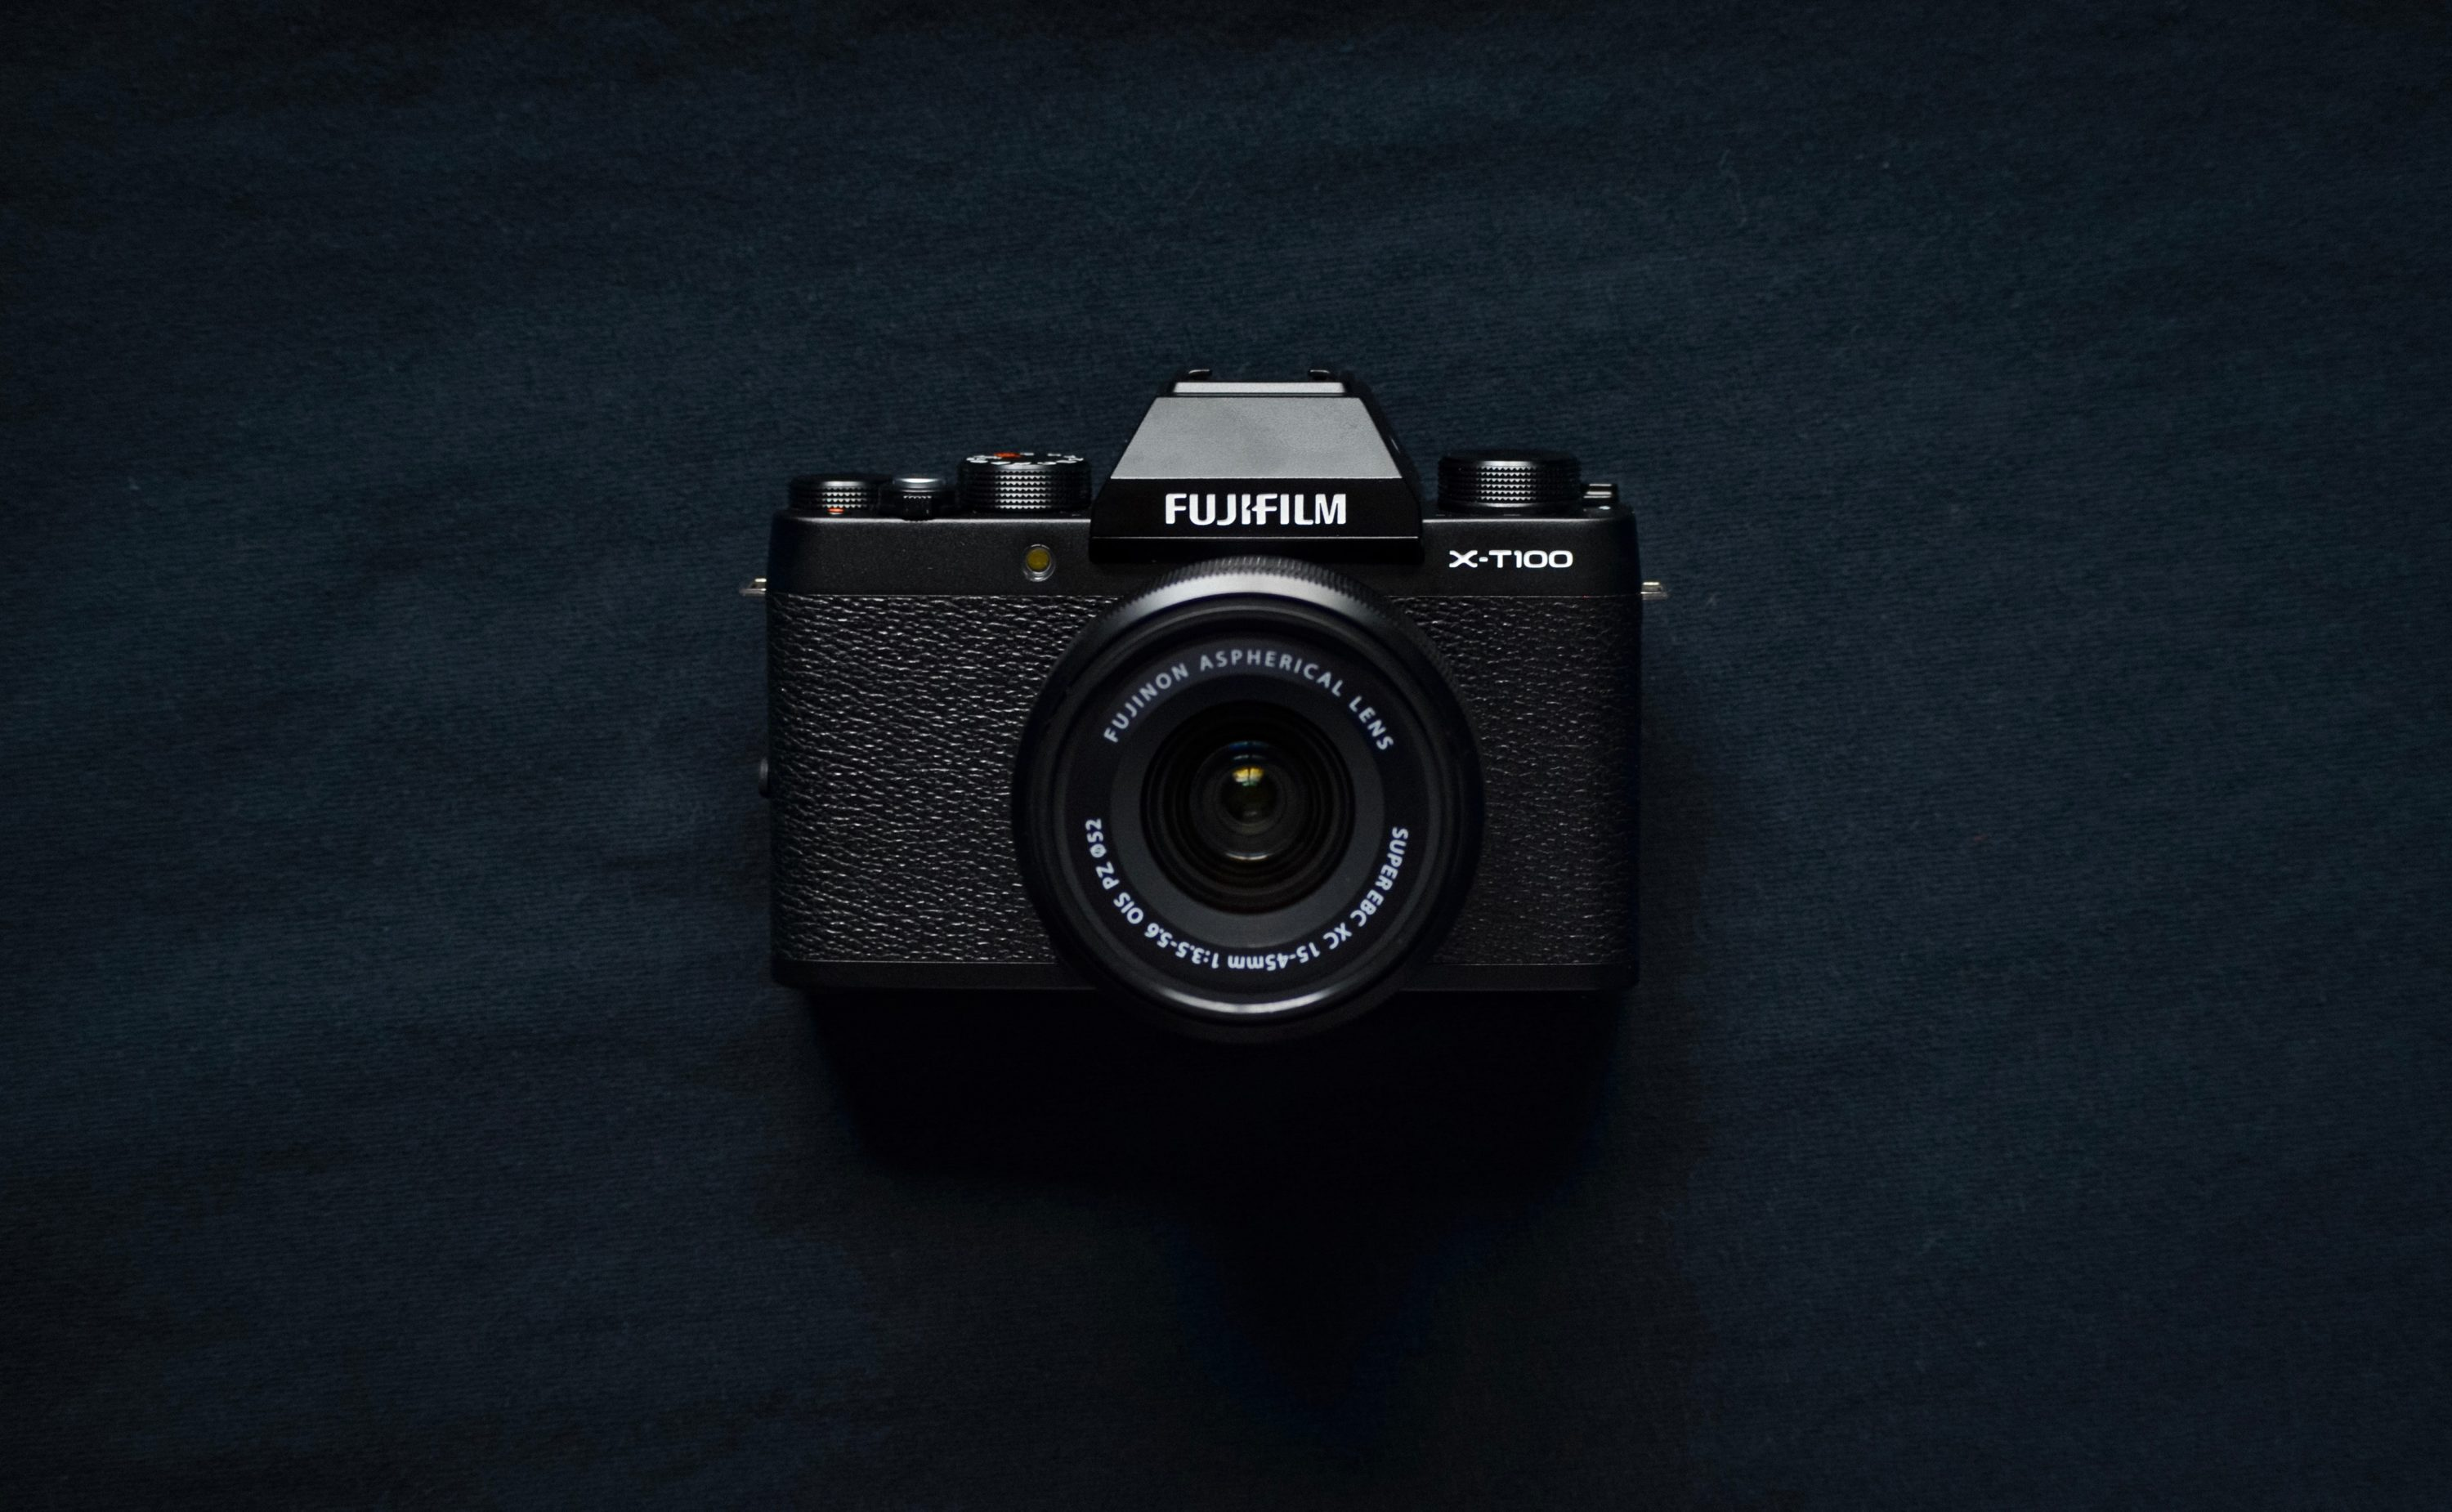 Fuji X-T100, photographed by Rohan Gangopadhyay